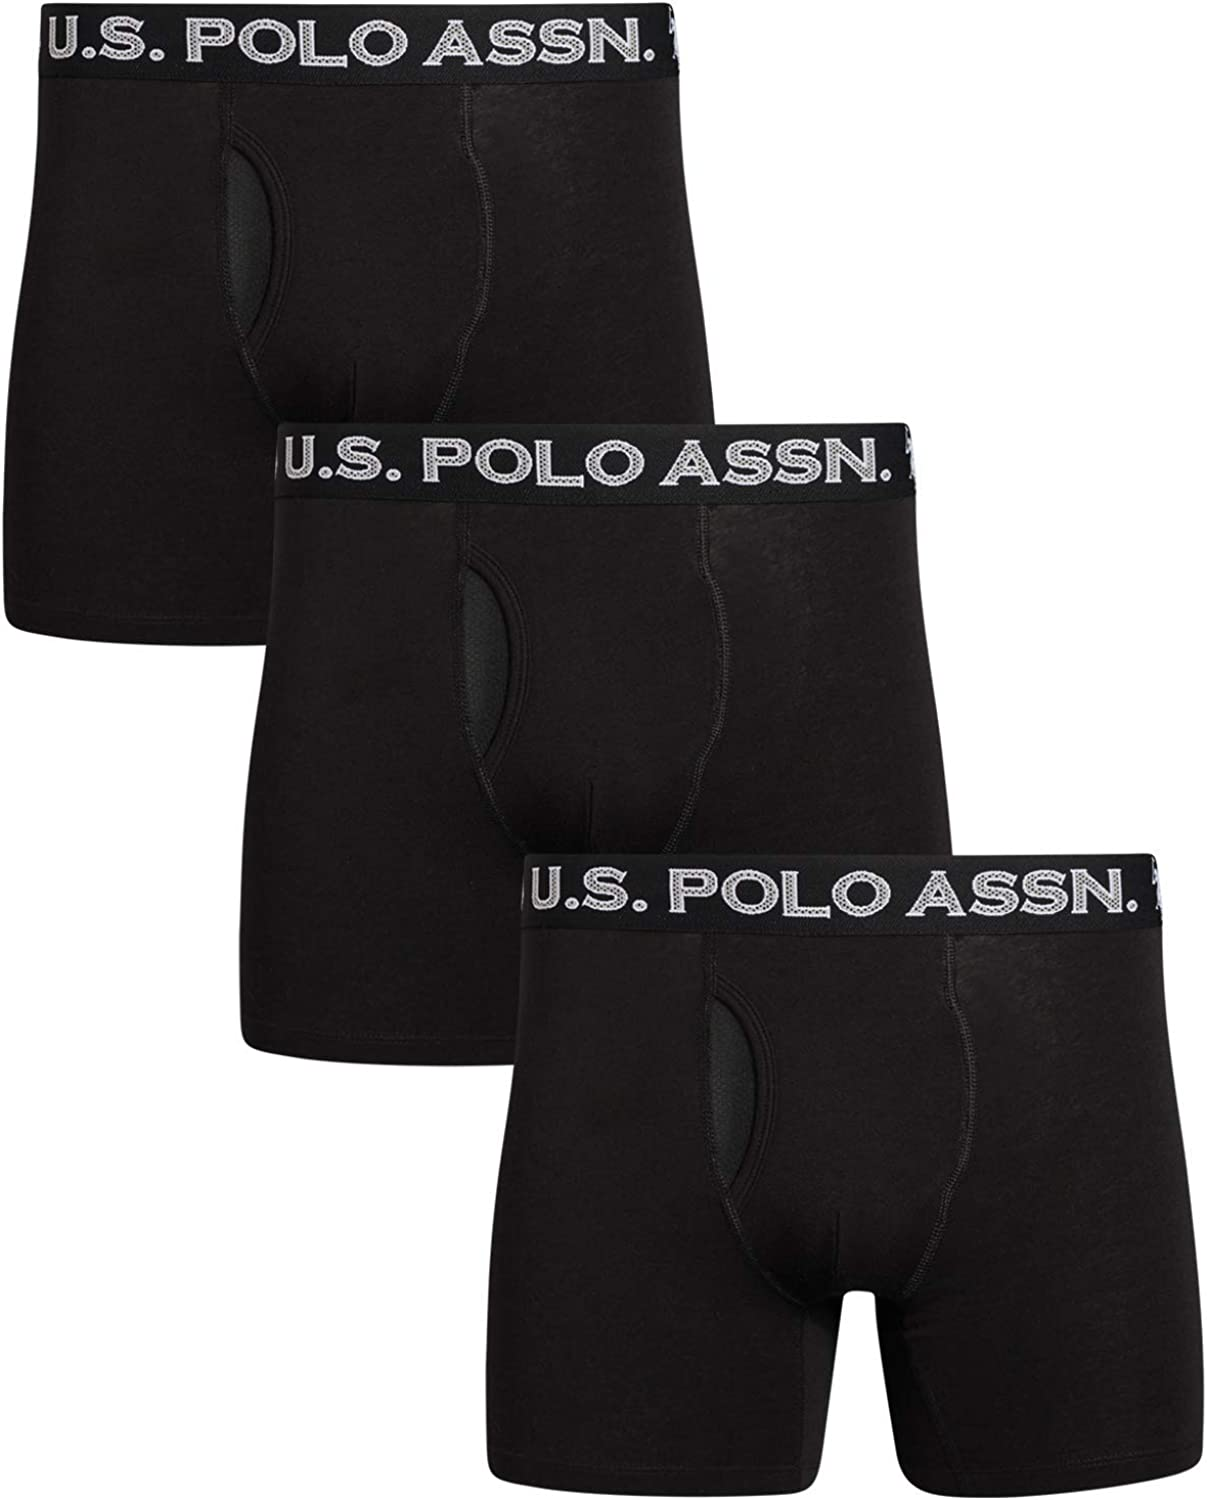 U.S. Polo Assn. Men's Cotton Boxer Briefs Underwear with Breathable Mesh Fly (3 Pack)